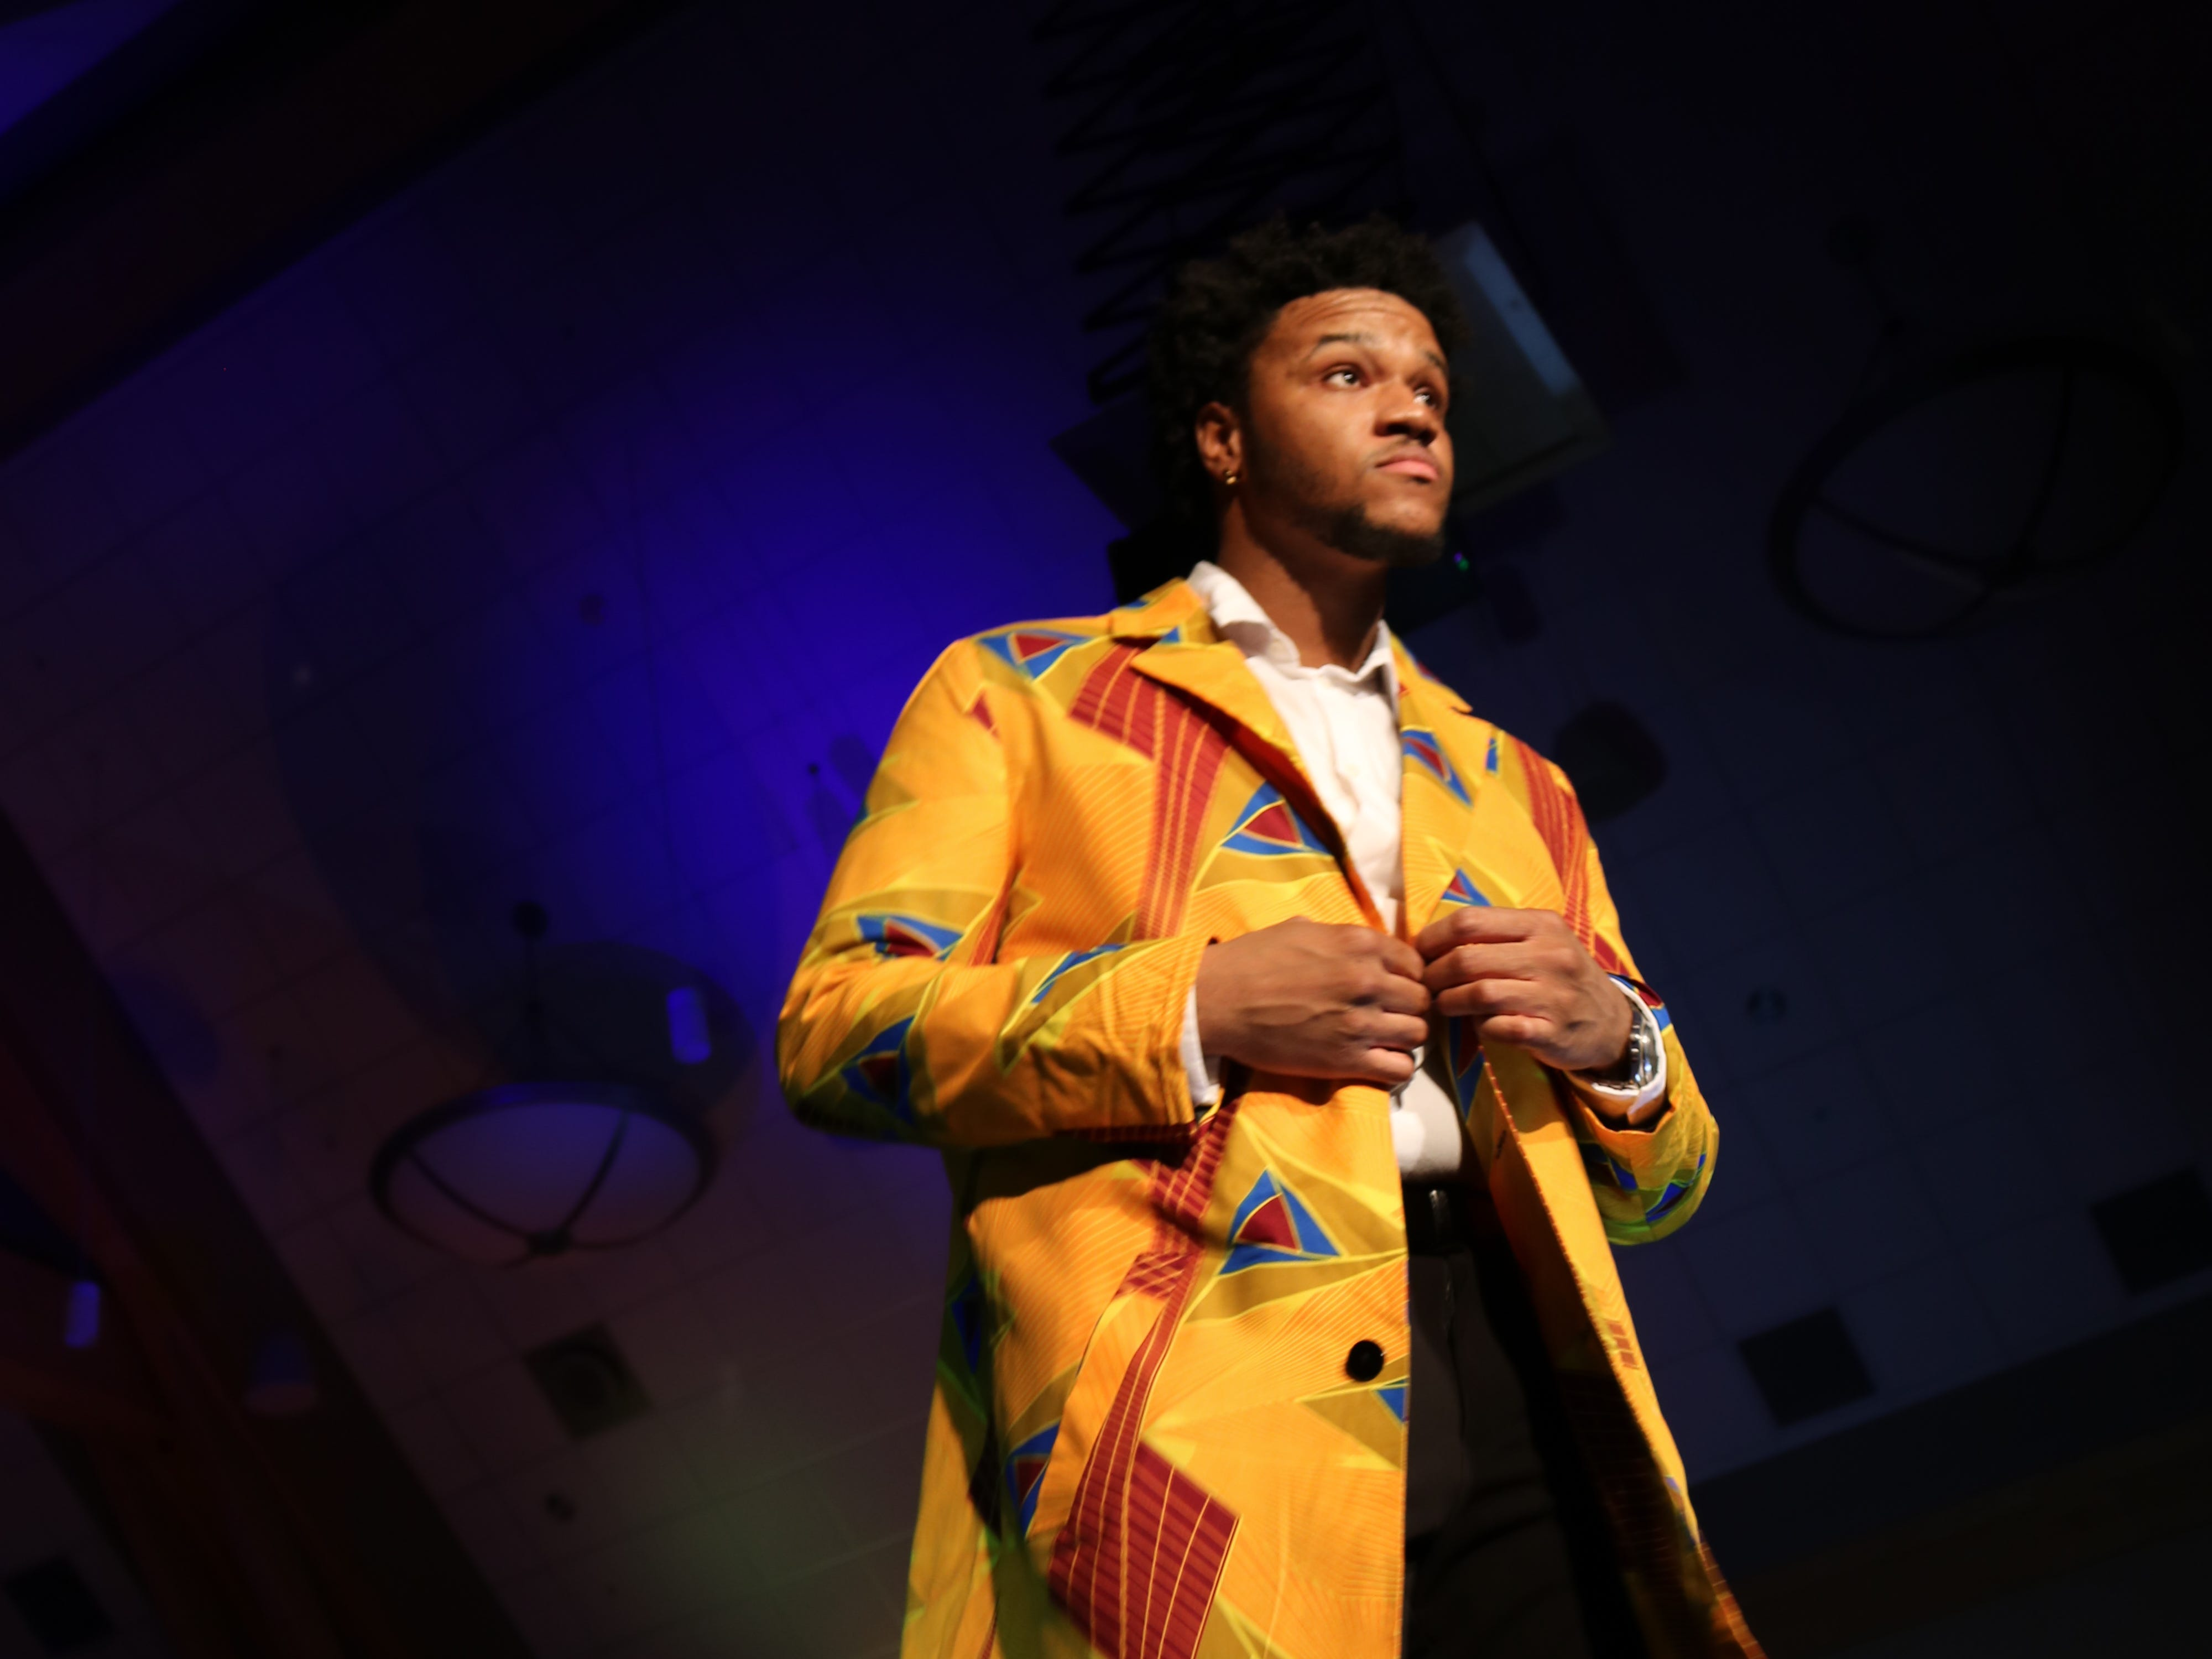 """UVM student shows off a vibrant yellow jacket as the crowd shouts praise at 2019 fashion show, """"Paint it Black,"""" on Saturday, Feb. 23, 2019, at the Davis Center."""